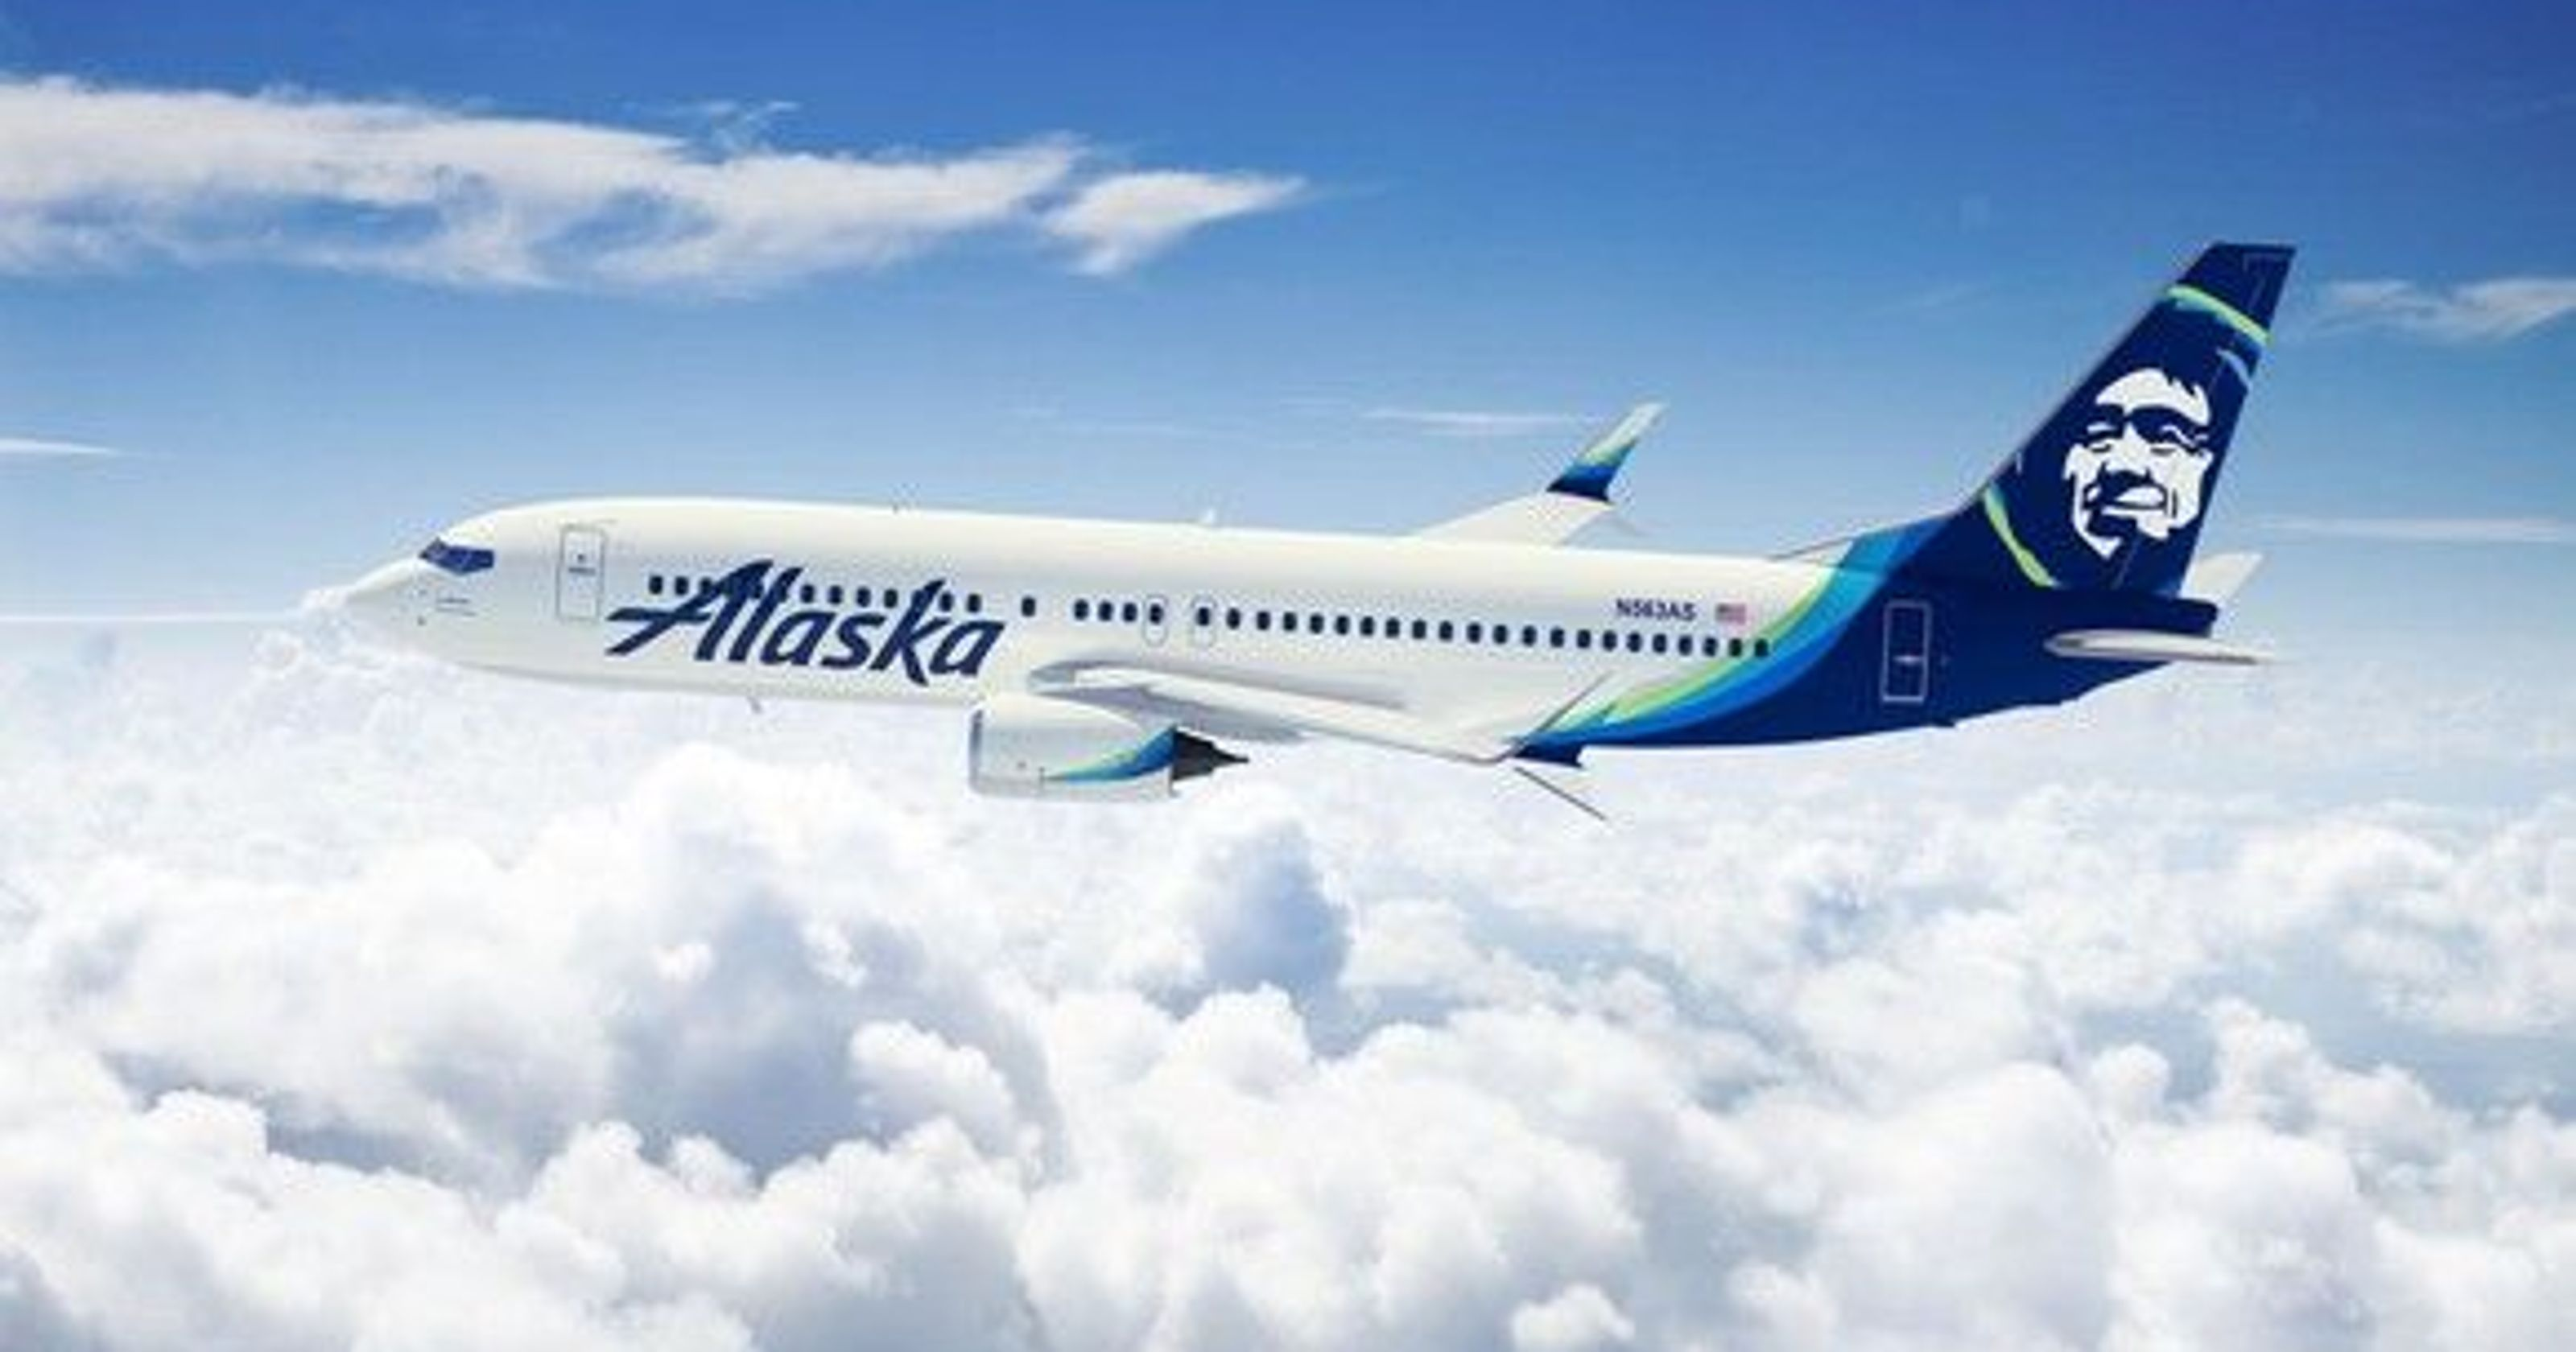 Alaska airlines is latest to hike bag fees, matching